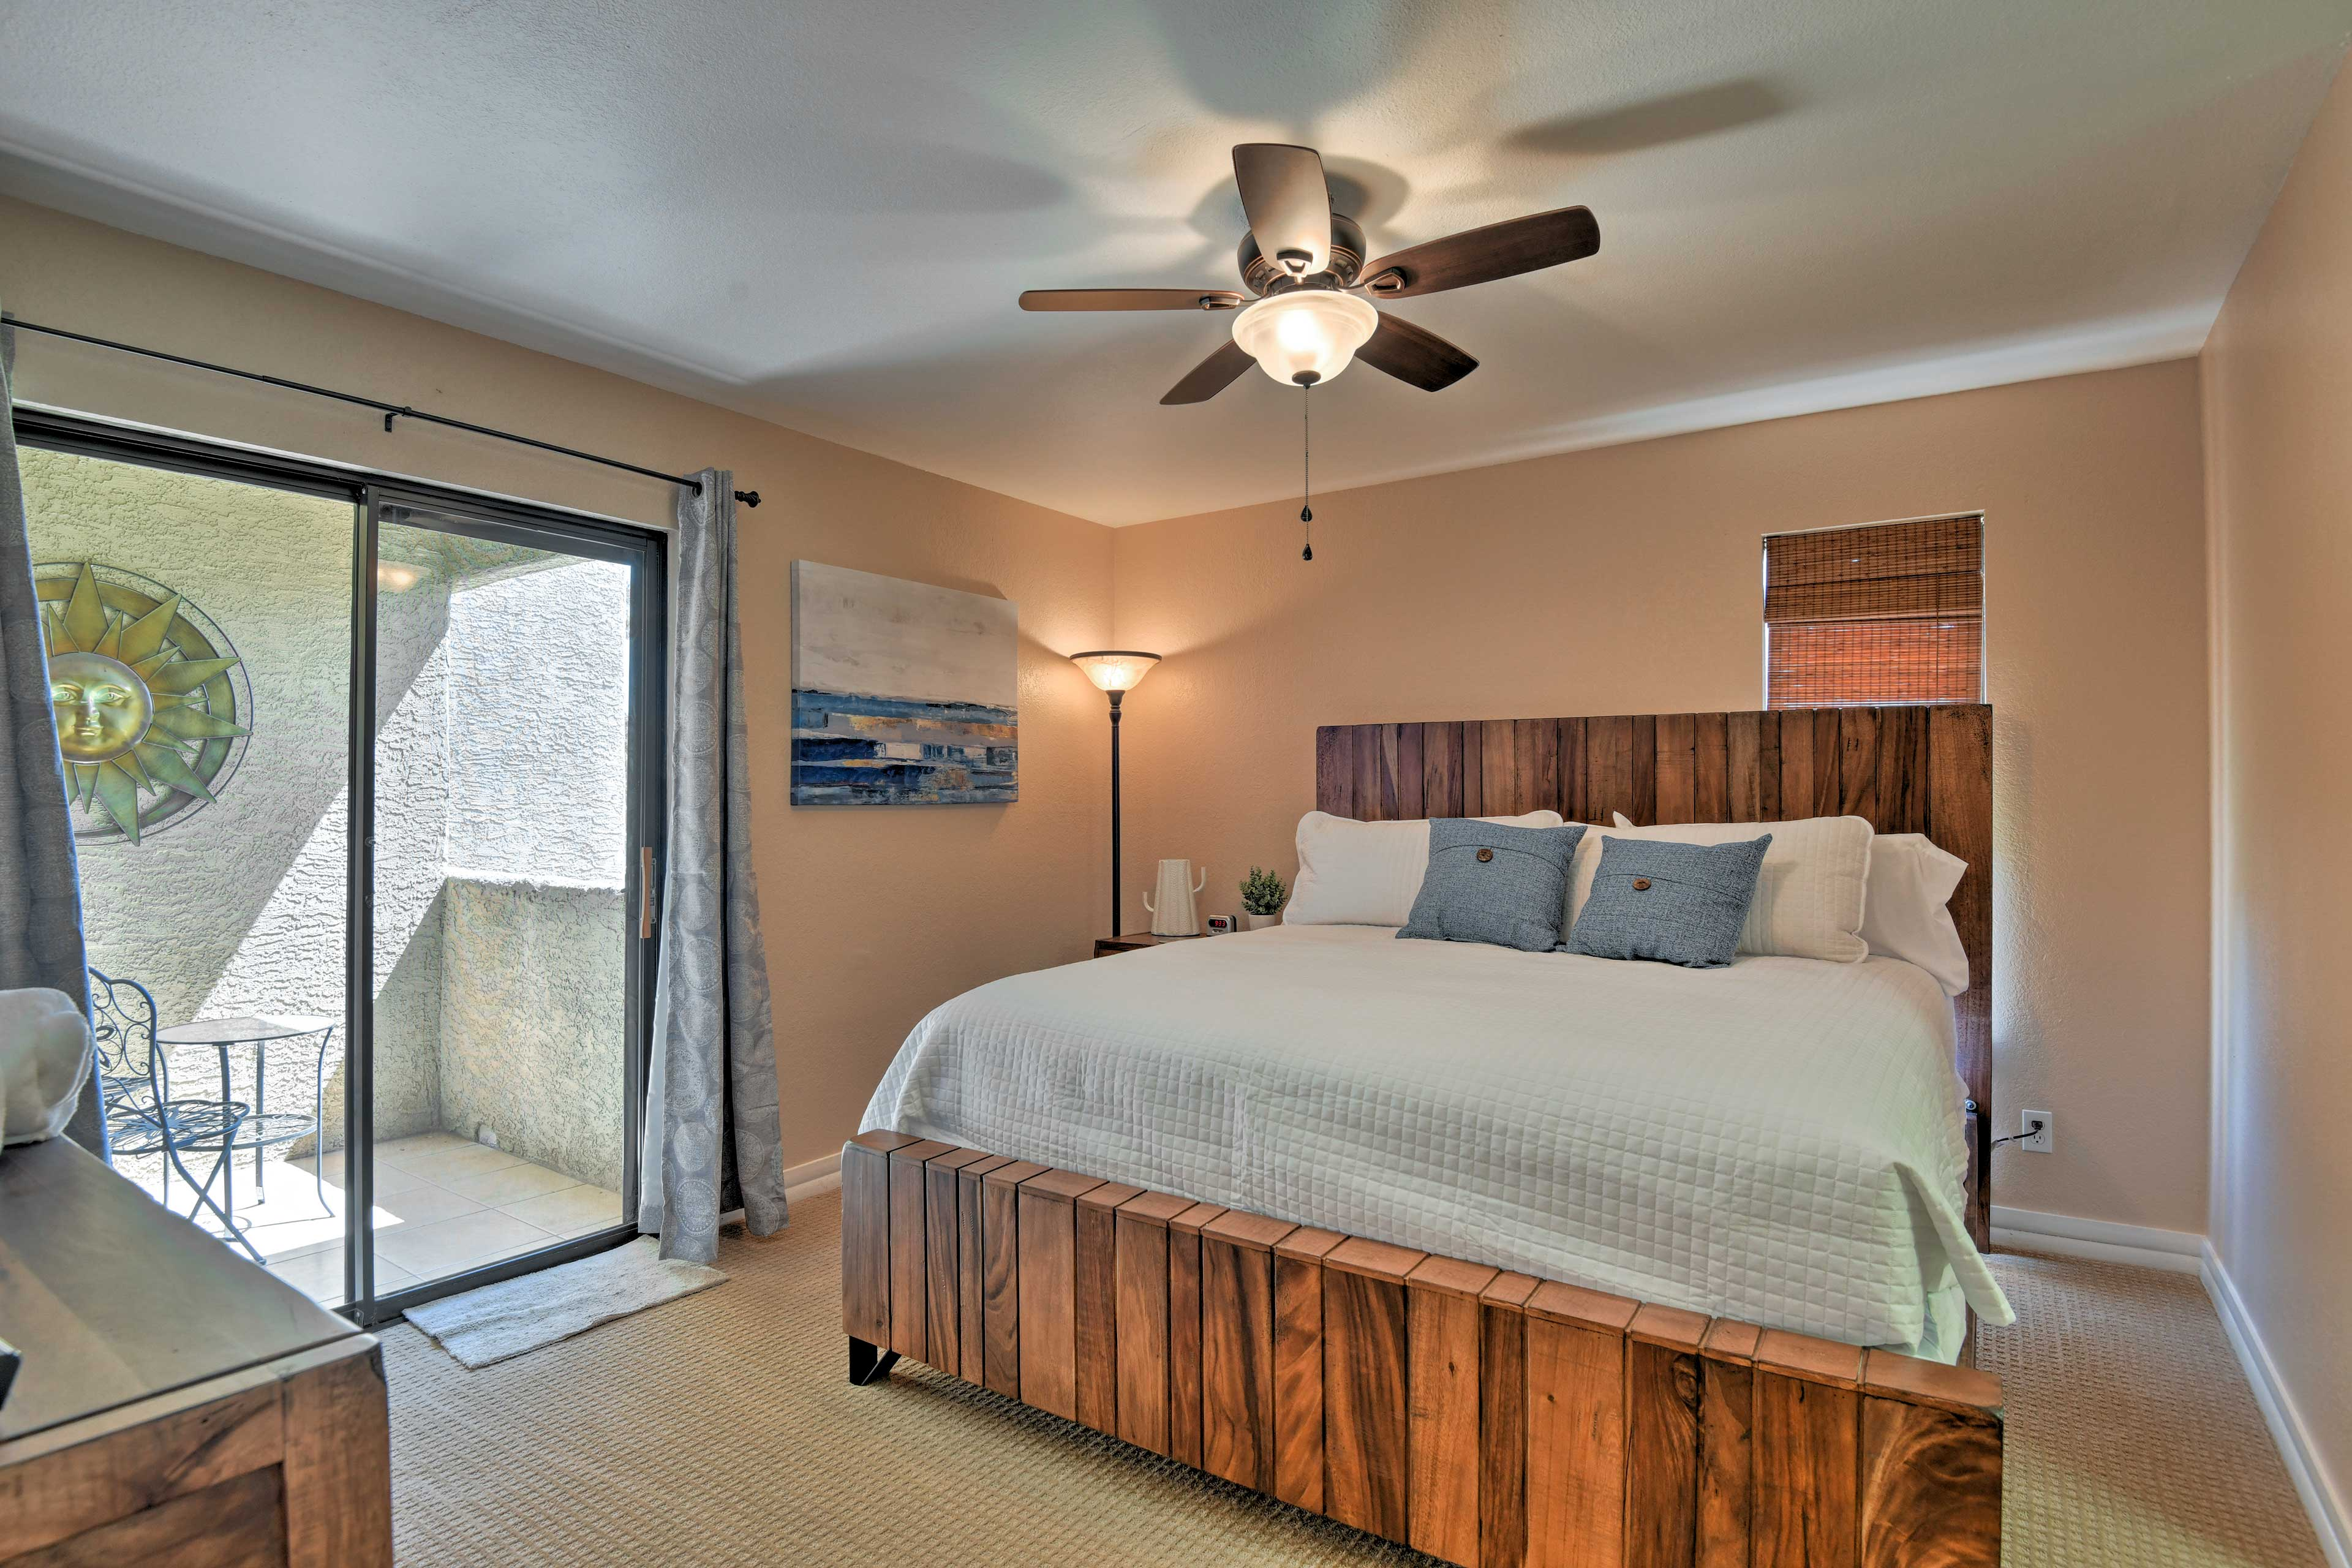 Fall back on the comfy king bed in the first master bedroom.